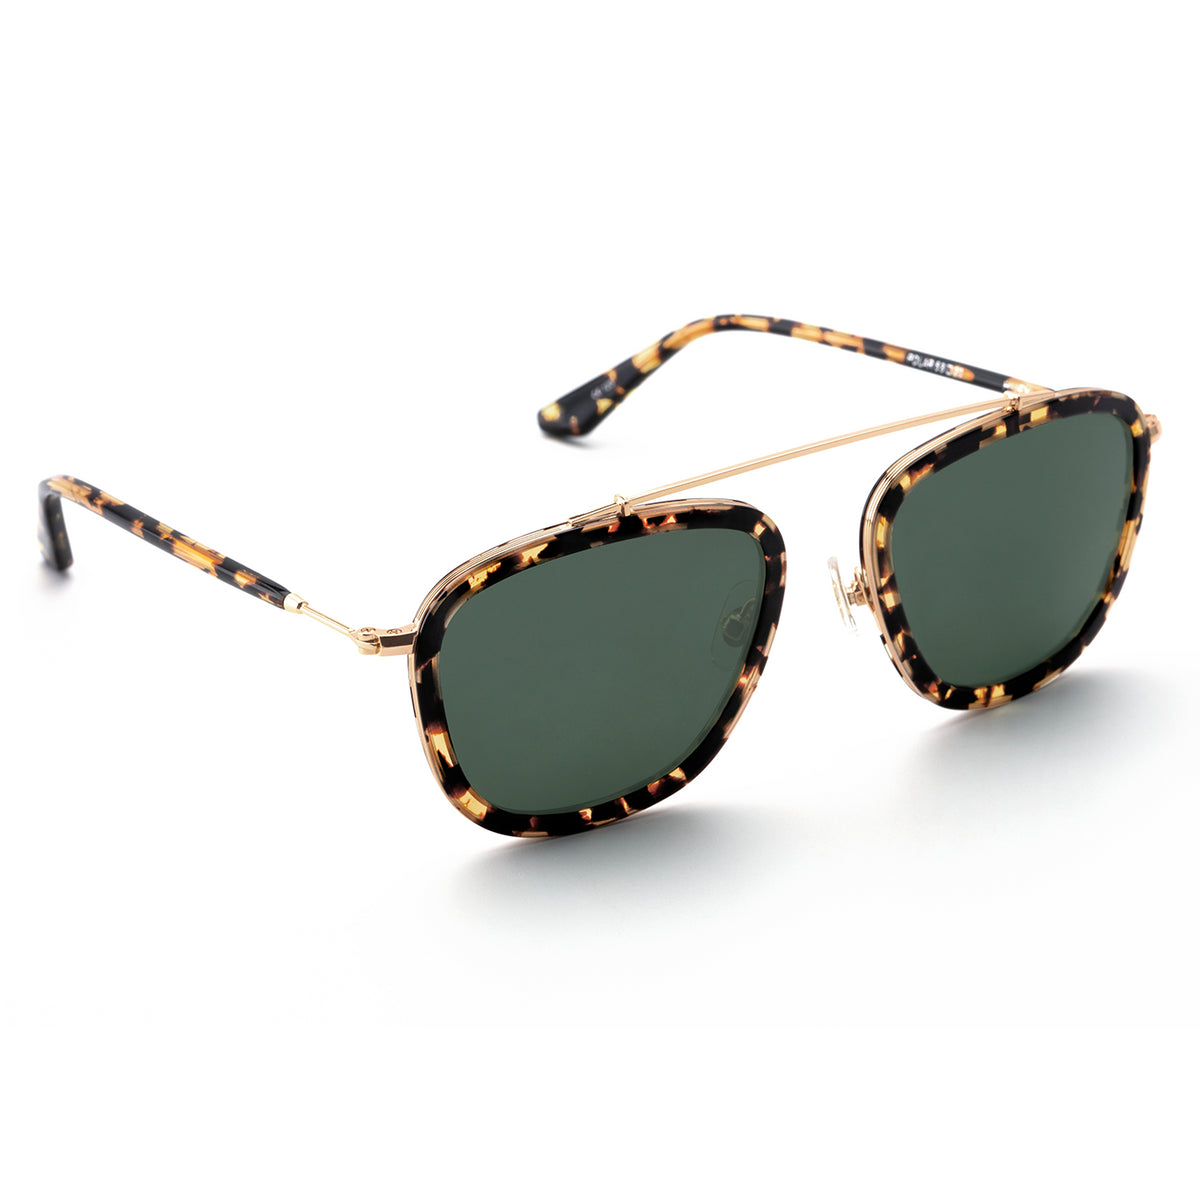 HUEY | Zulu Polarized 24K handcrafted acetate sunglasses